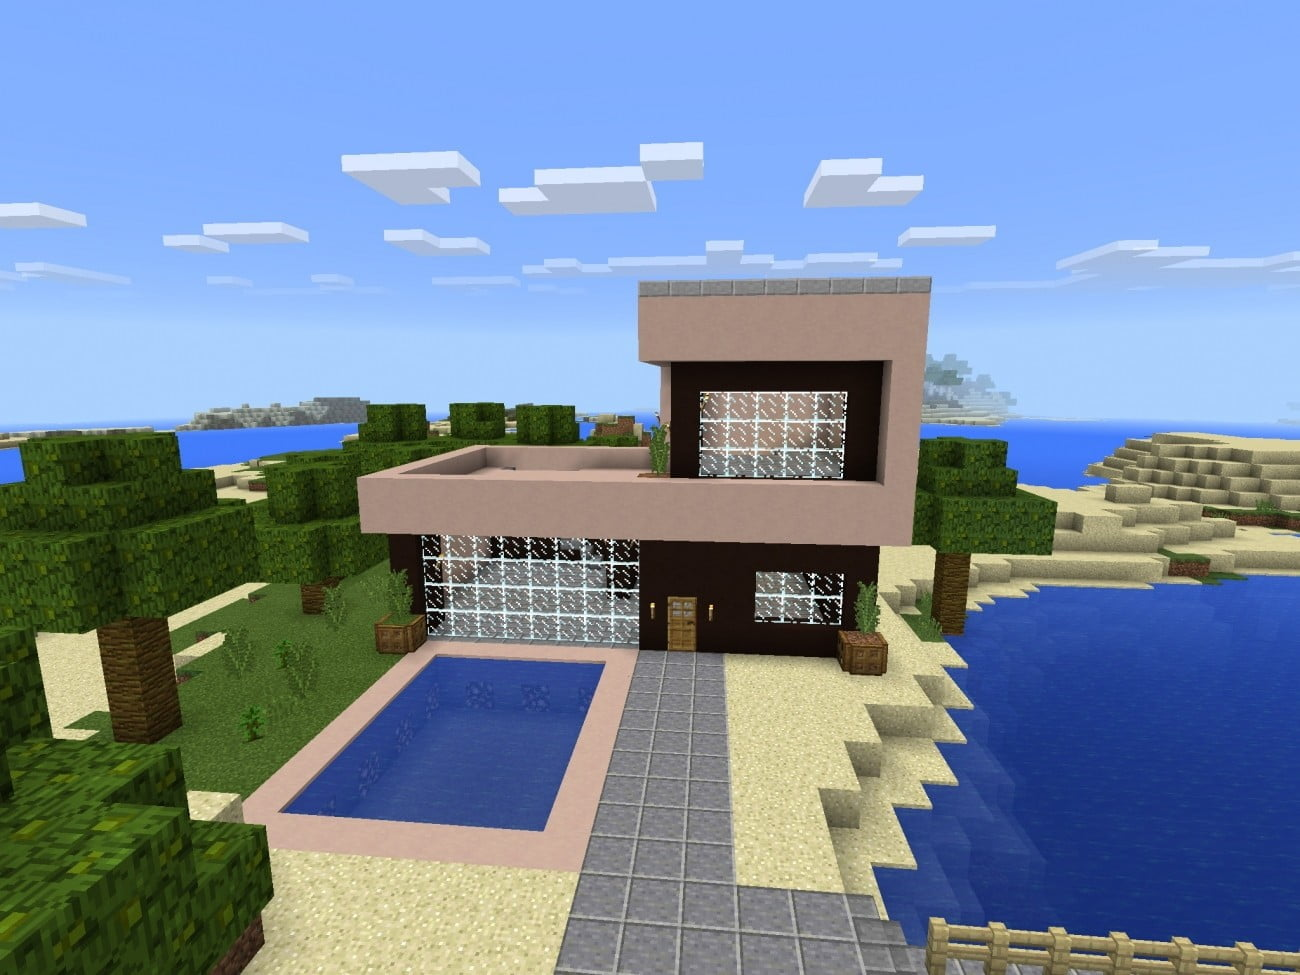 ᐅ Build A Small Beach House In Minecraft Minecraft Bauideen De